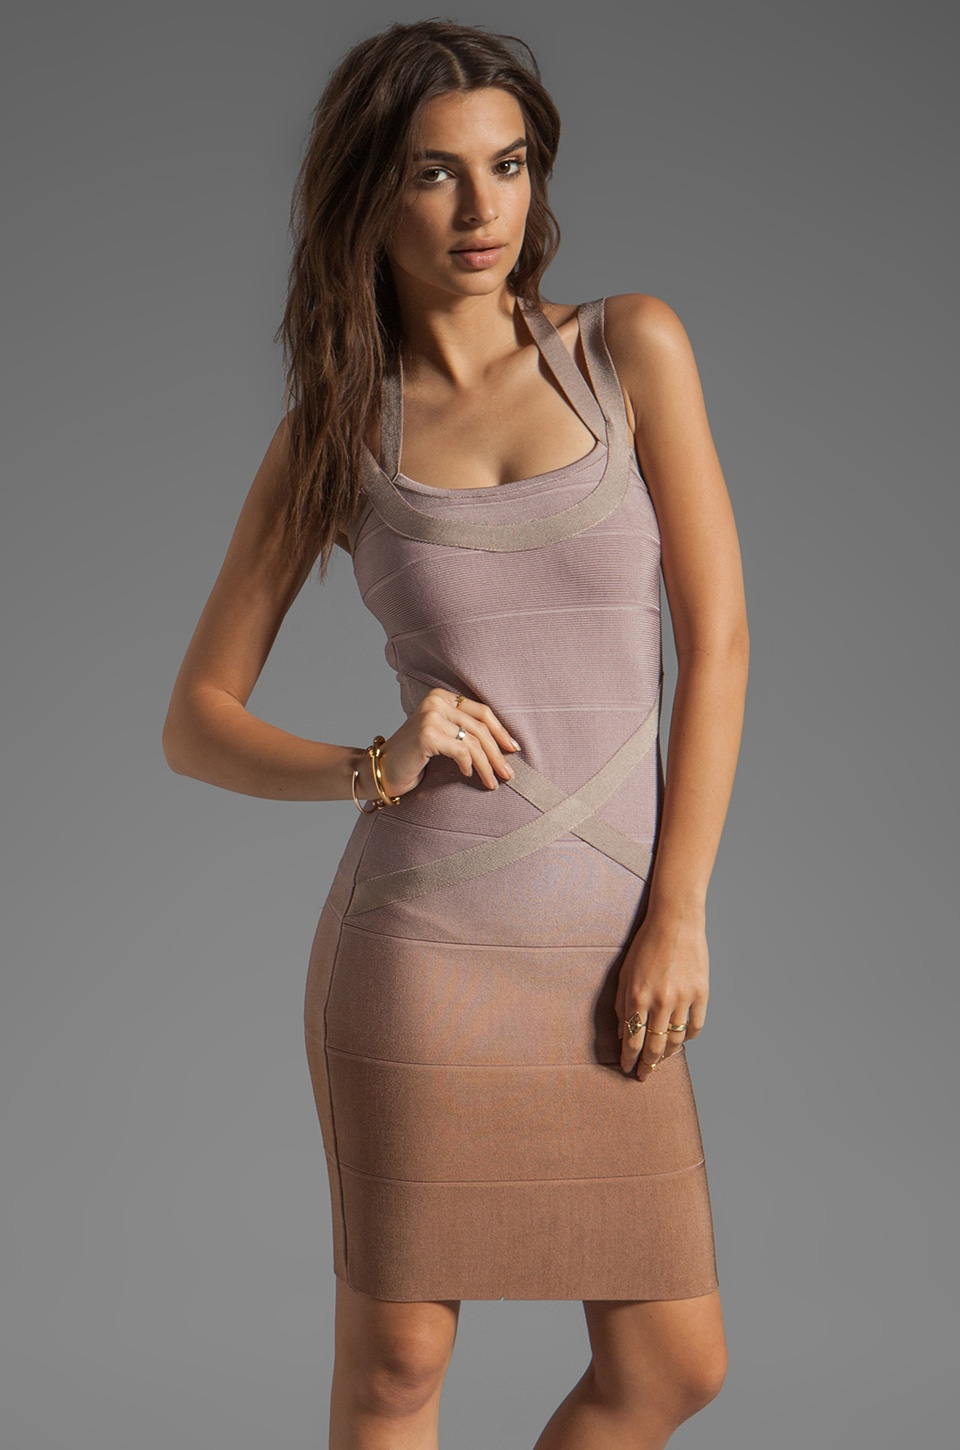 Stretta Ciara Dress in Beige Ombre